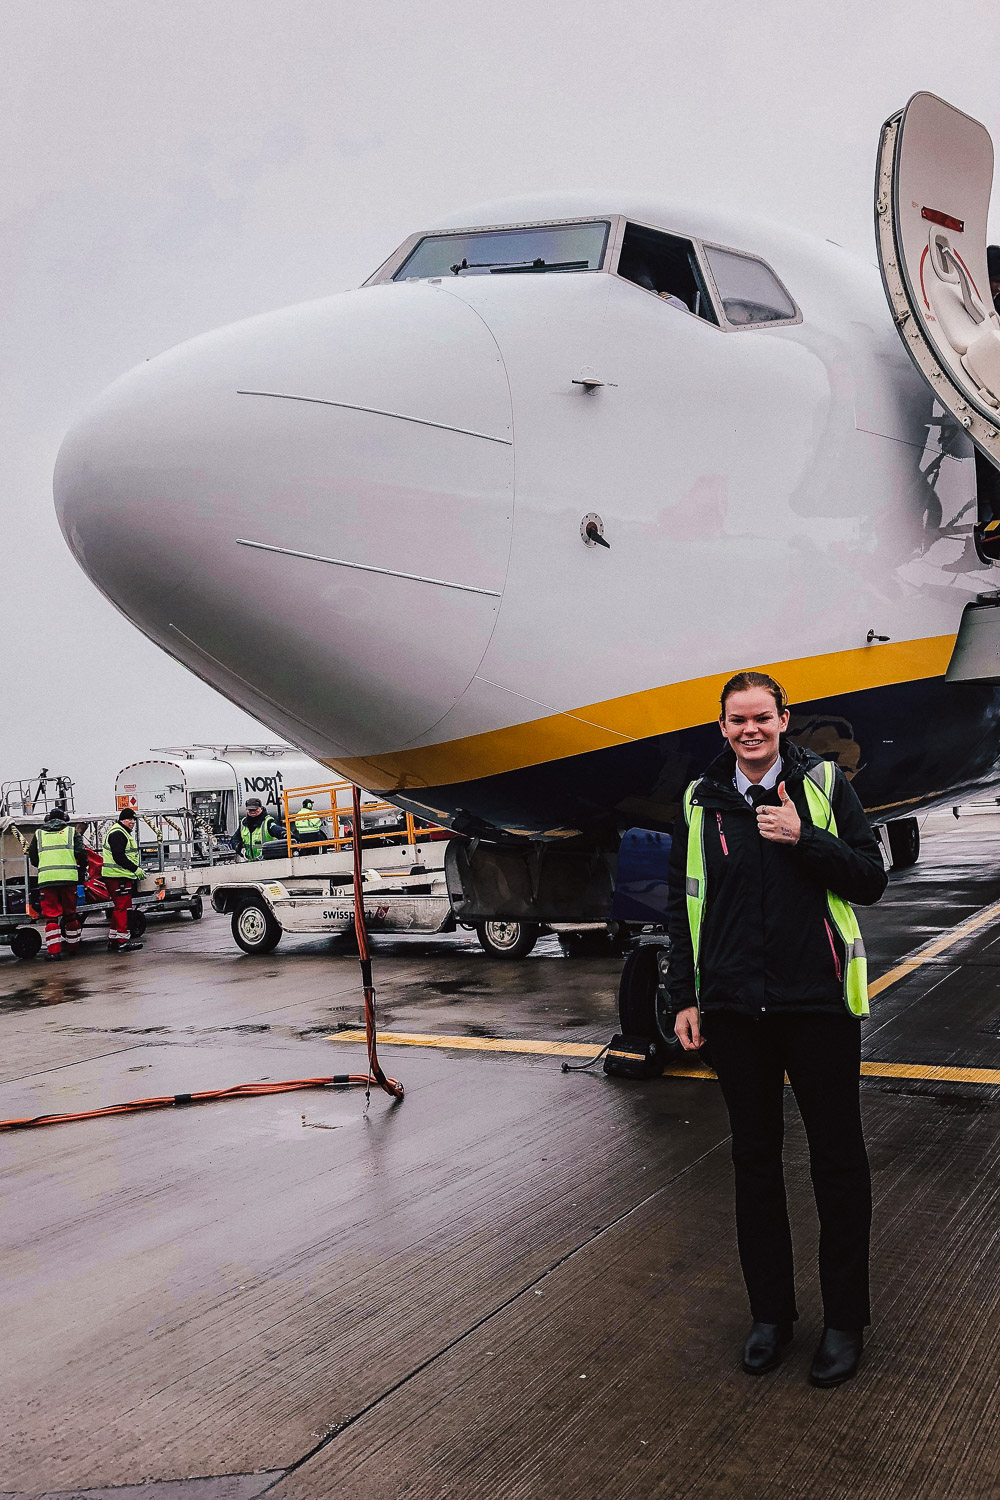 Sarah Dunglinson, pilot for Ryanair - answers common questions about airline travel.